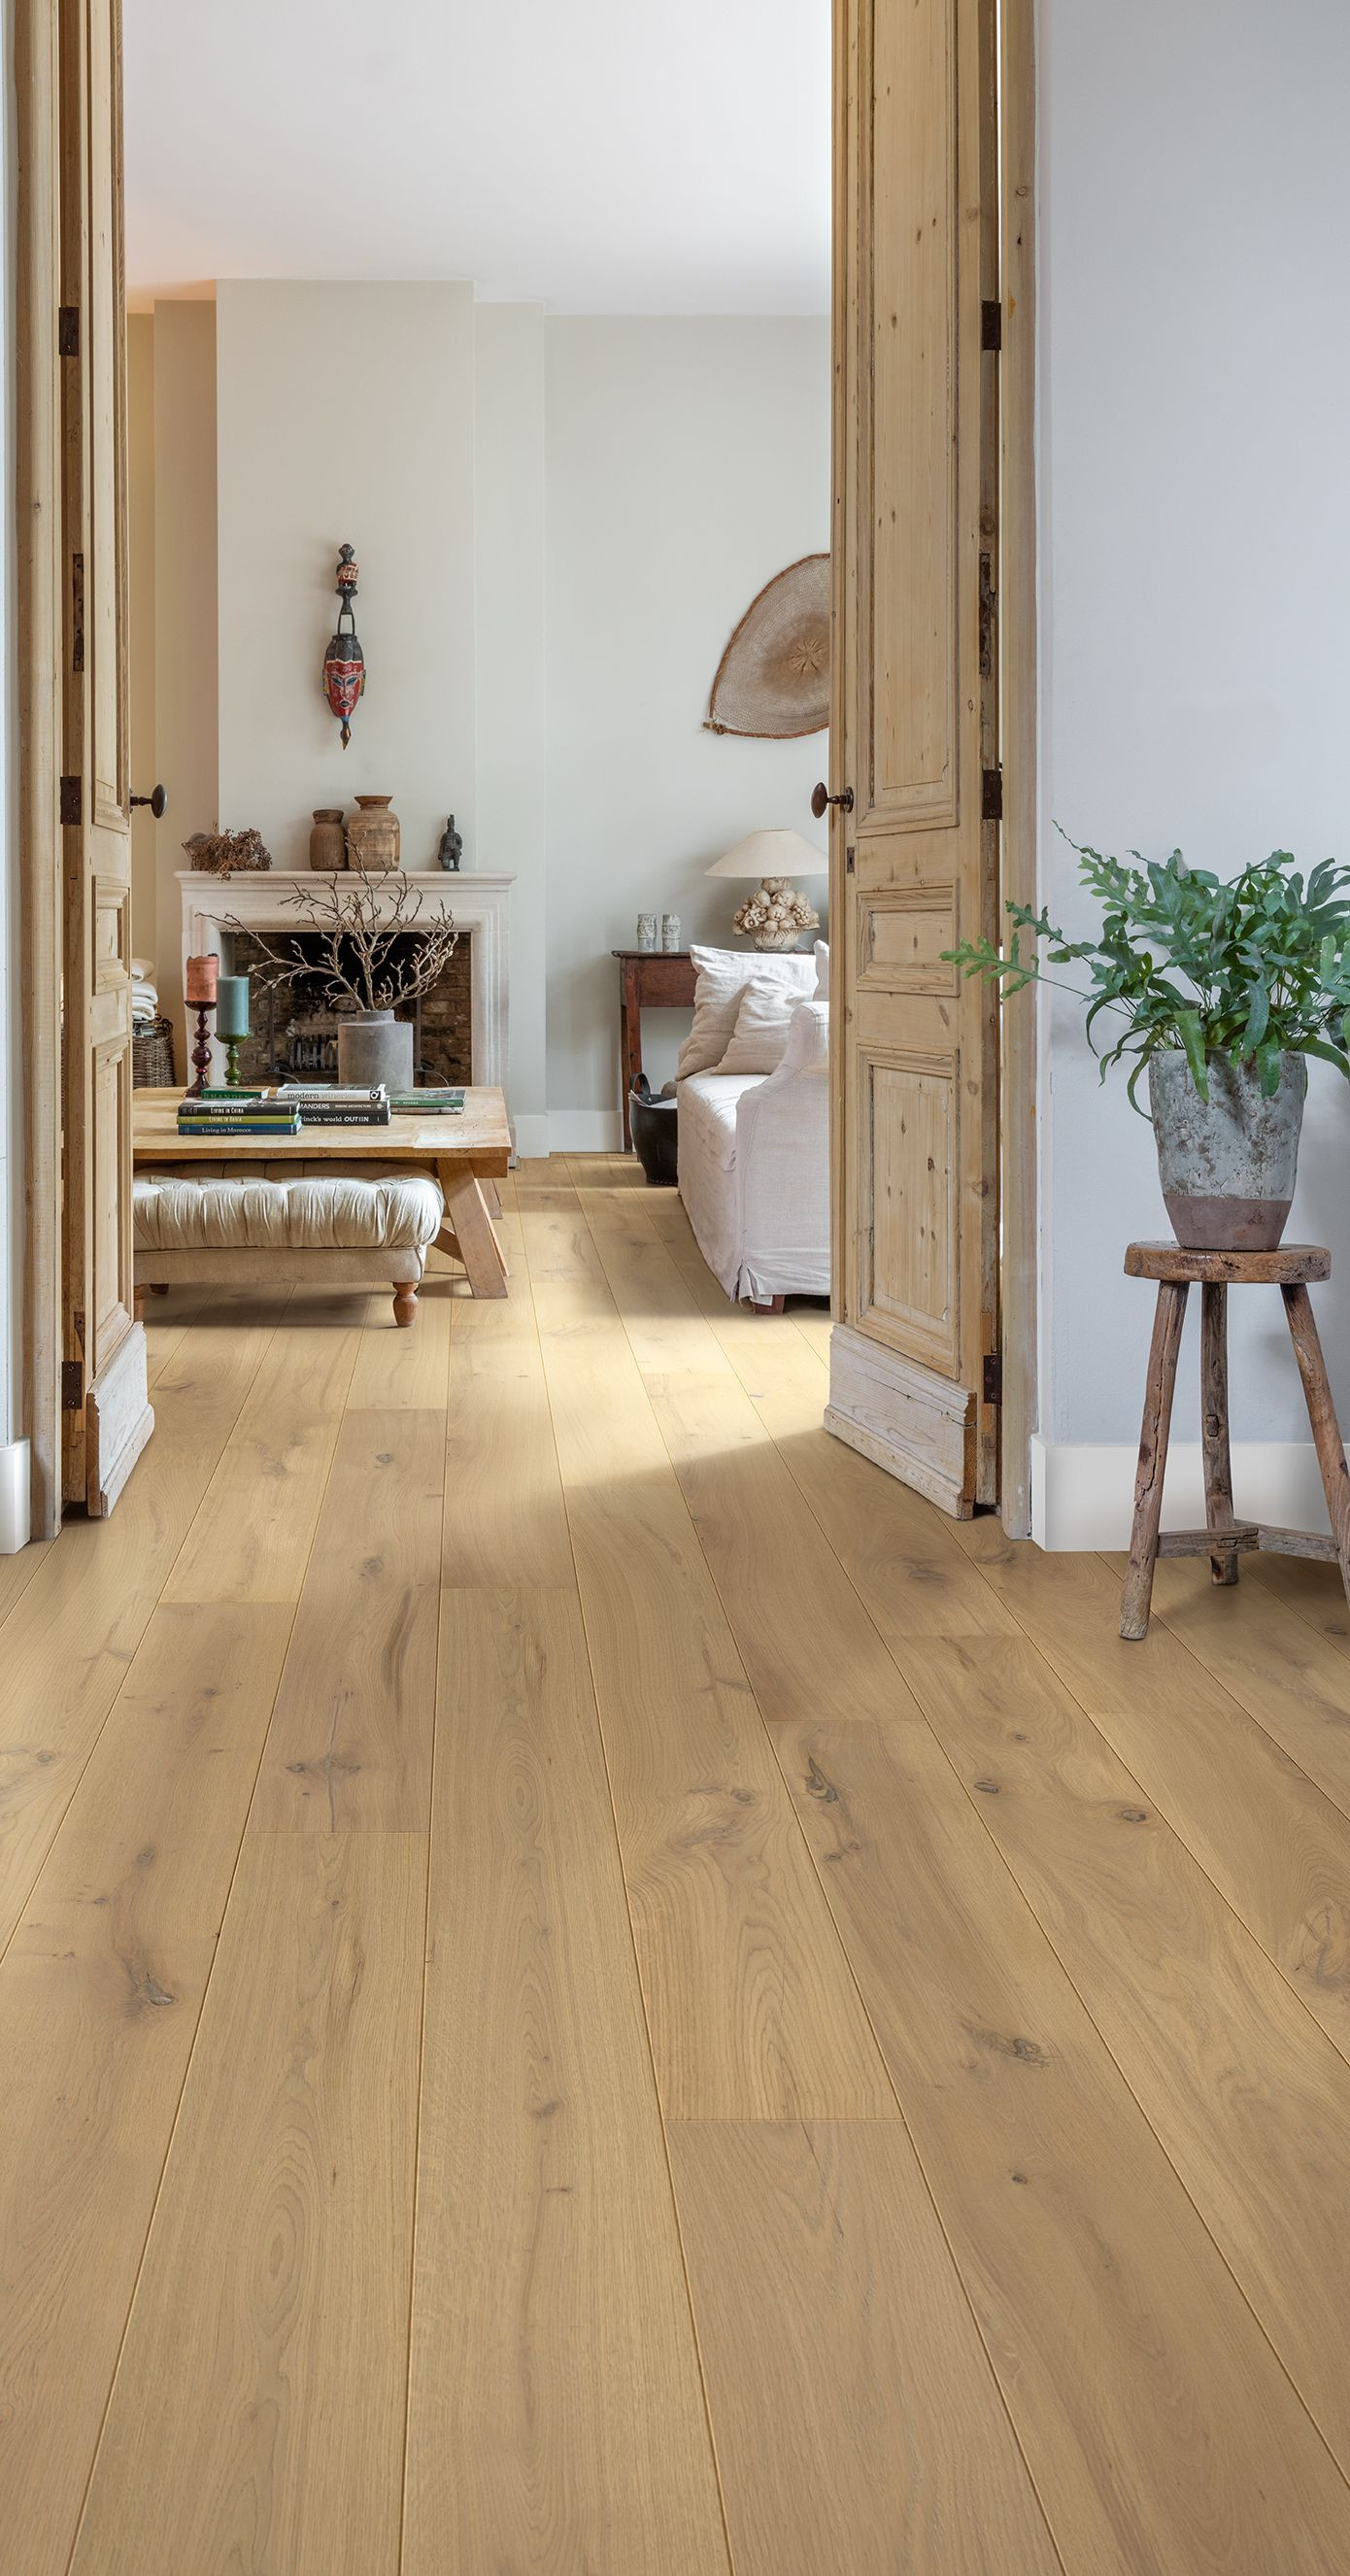 hardwood floor solutions of quick step hardwood flooring palazzo summer oak extra matt pertaining to quick step hardwood flooring palazzo summer oak extra matt pal3886 in a country living room to find more living room inspiration visit our website